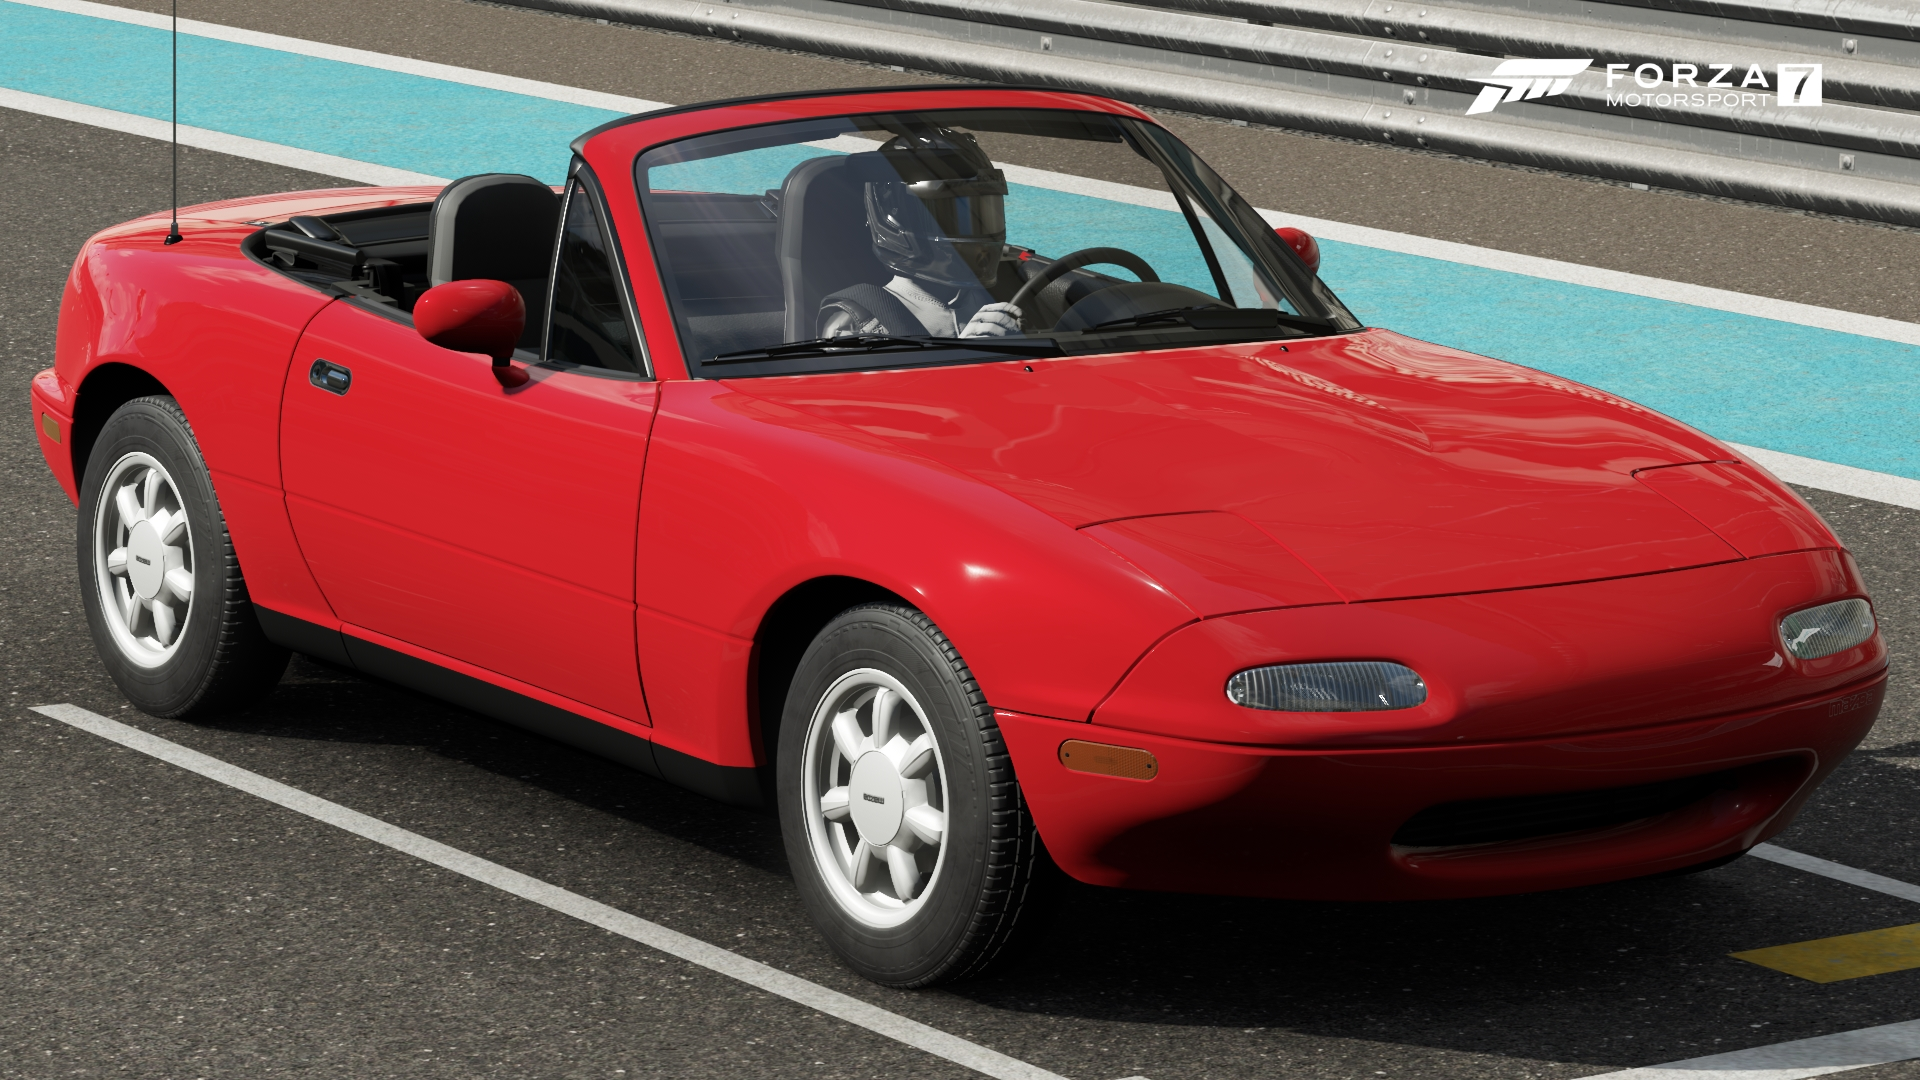 com vs autoguide miata mx comparisons mazda news car